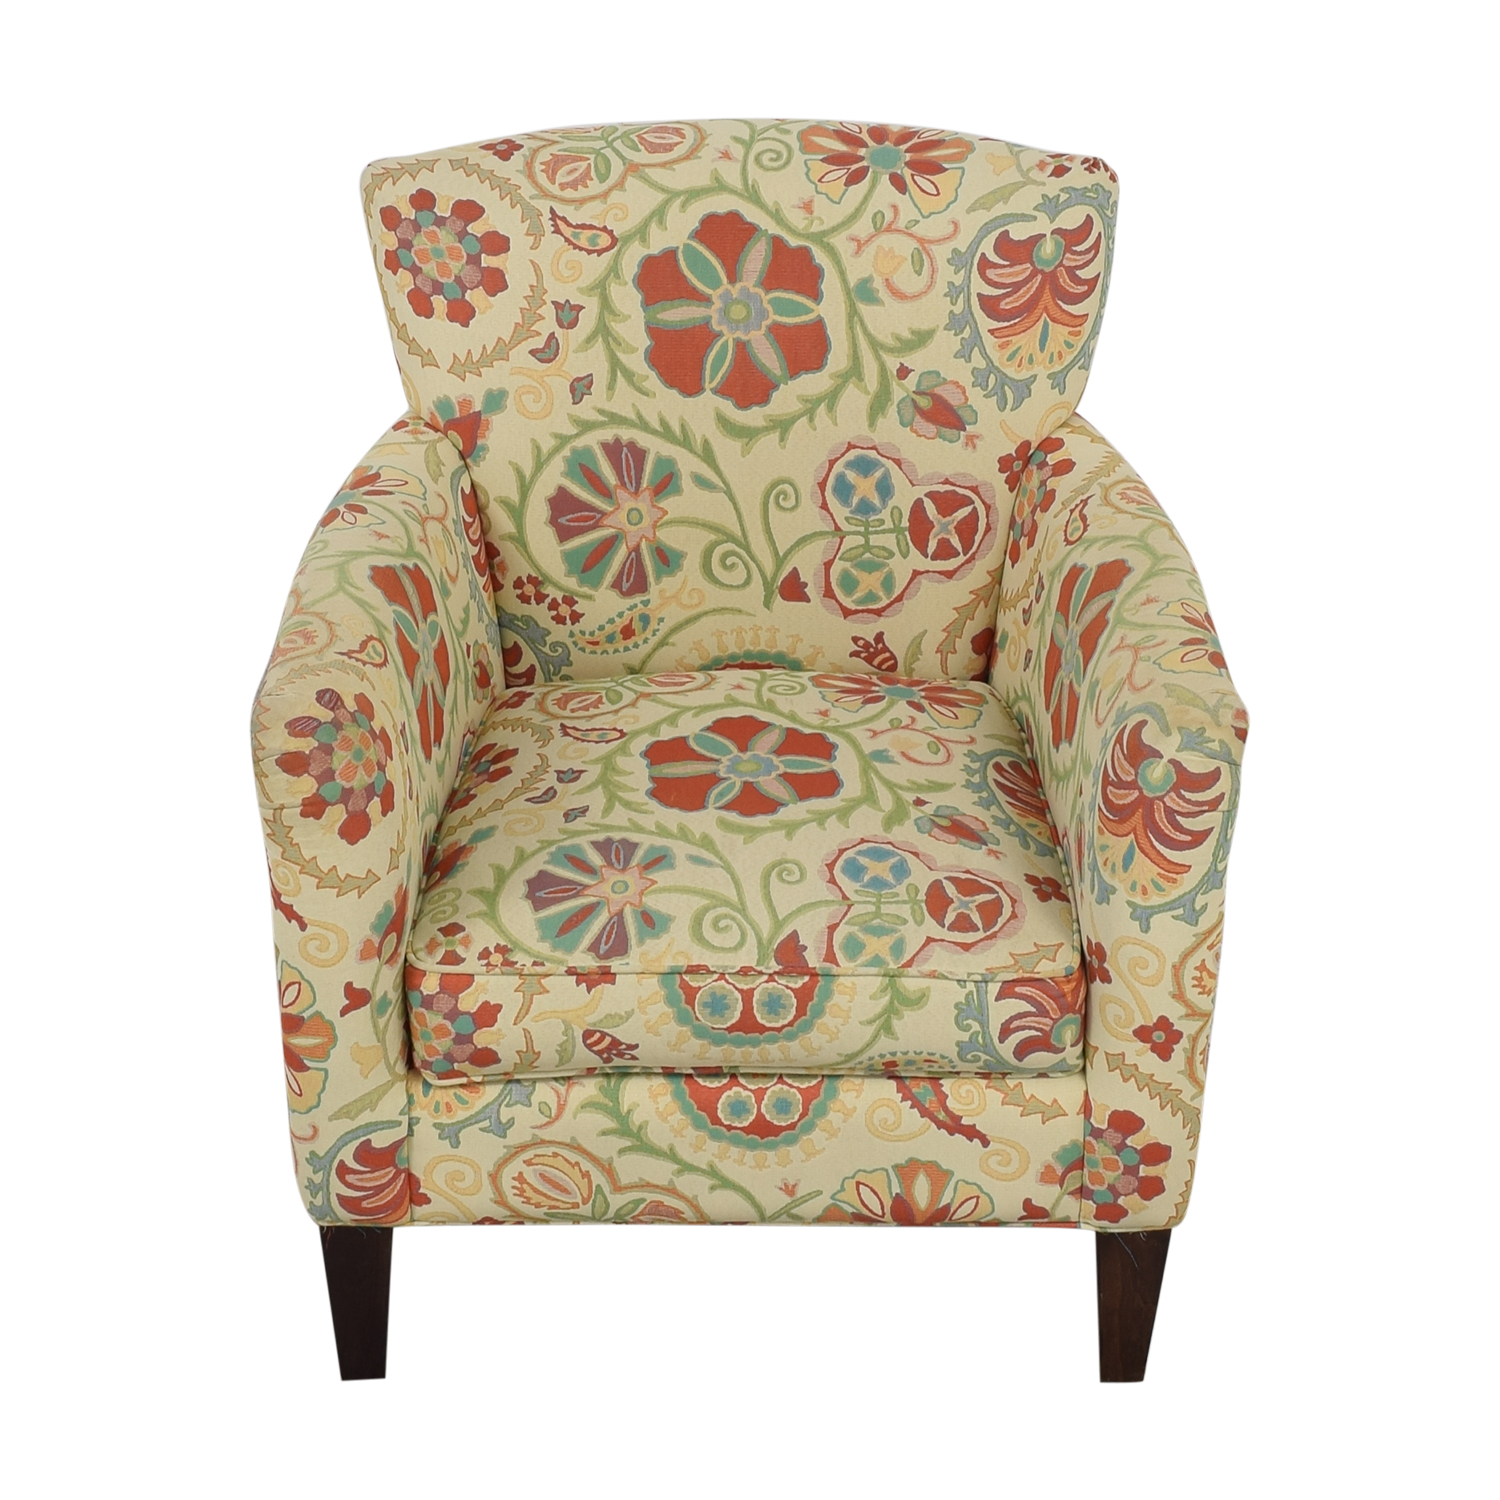 Crate & Barrel Crate & Barrel Upholstered Printed Armchair price